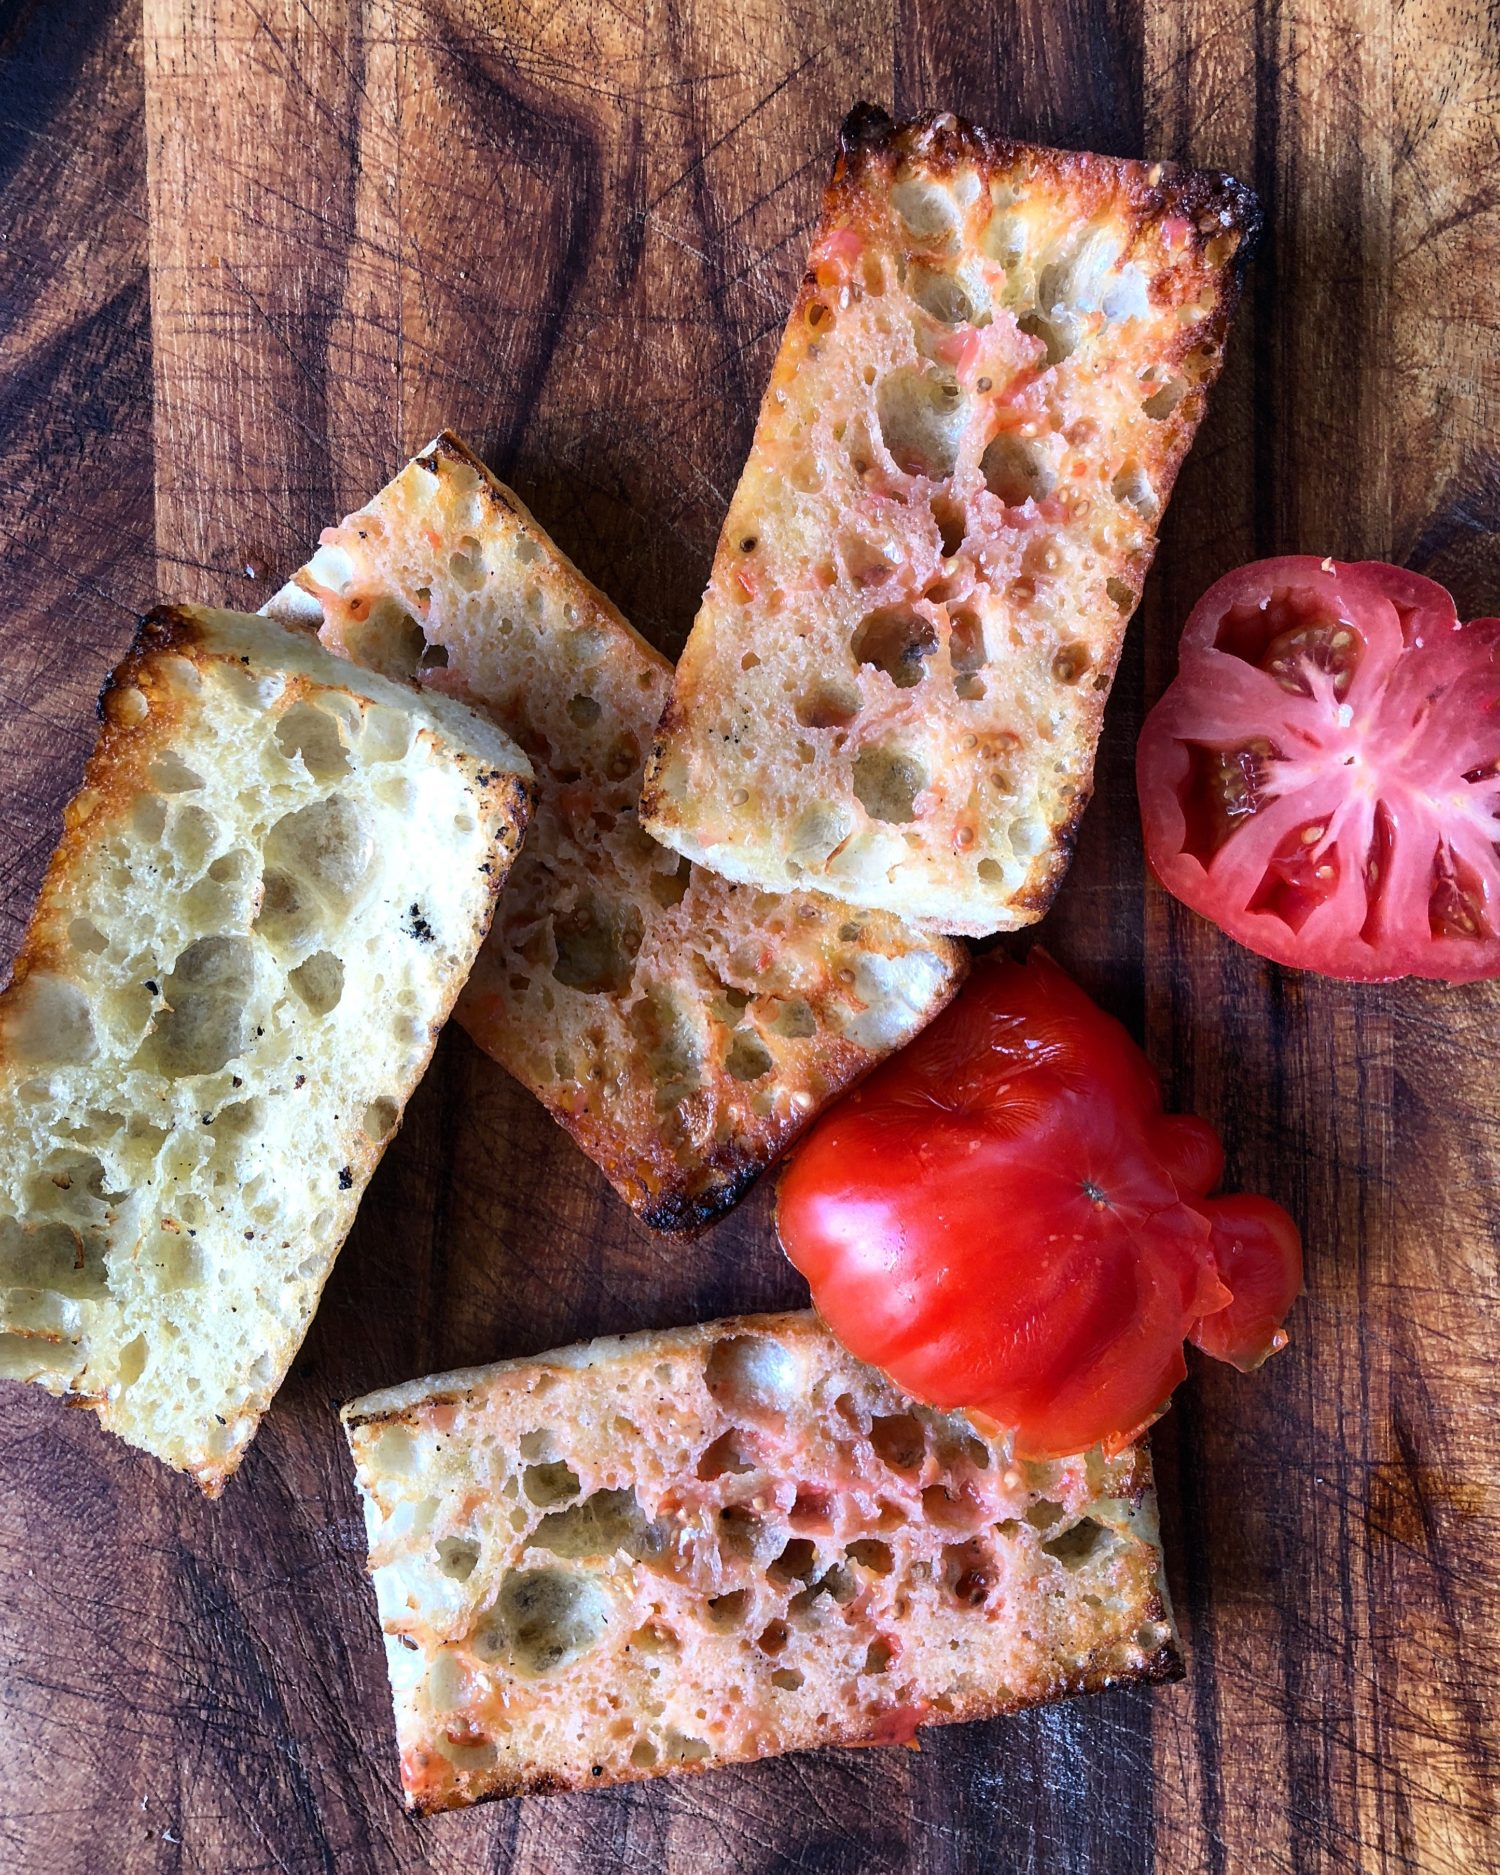 Grilled Ciabatta with olive oil, and rubbed tomato, pan con tomate